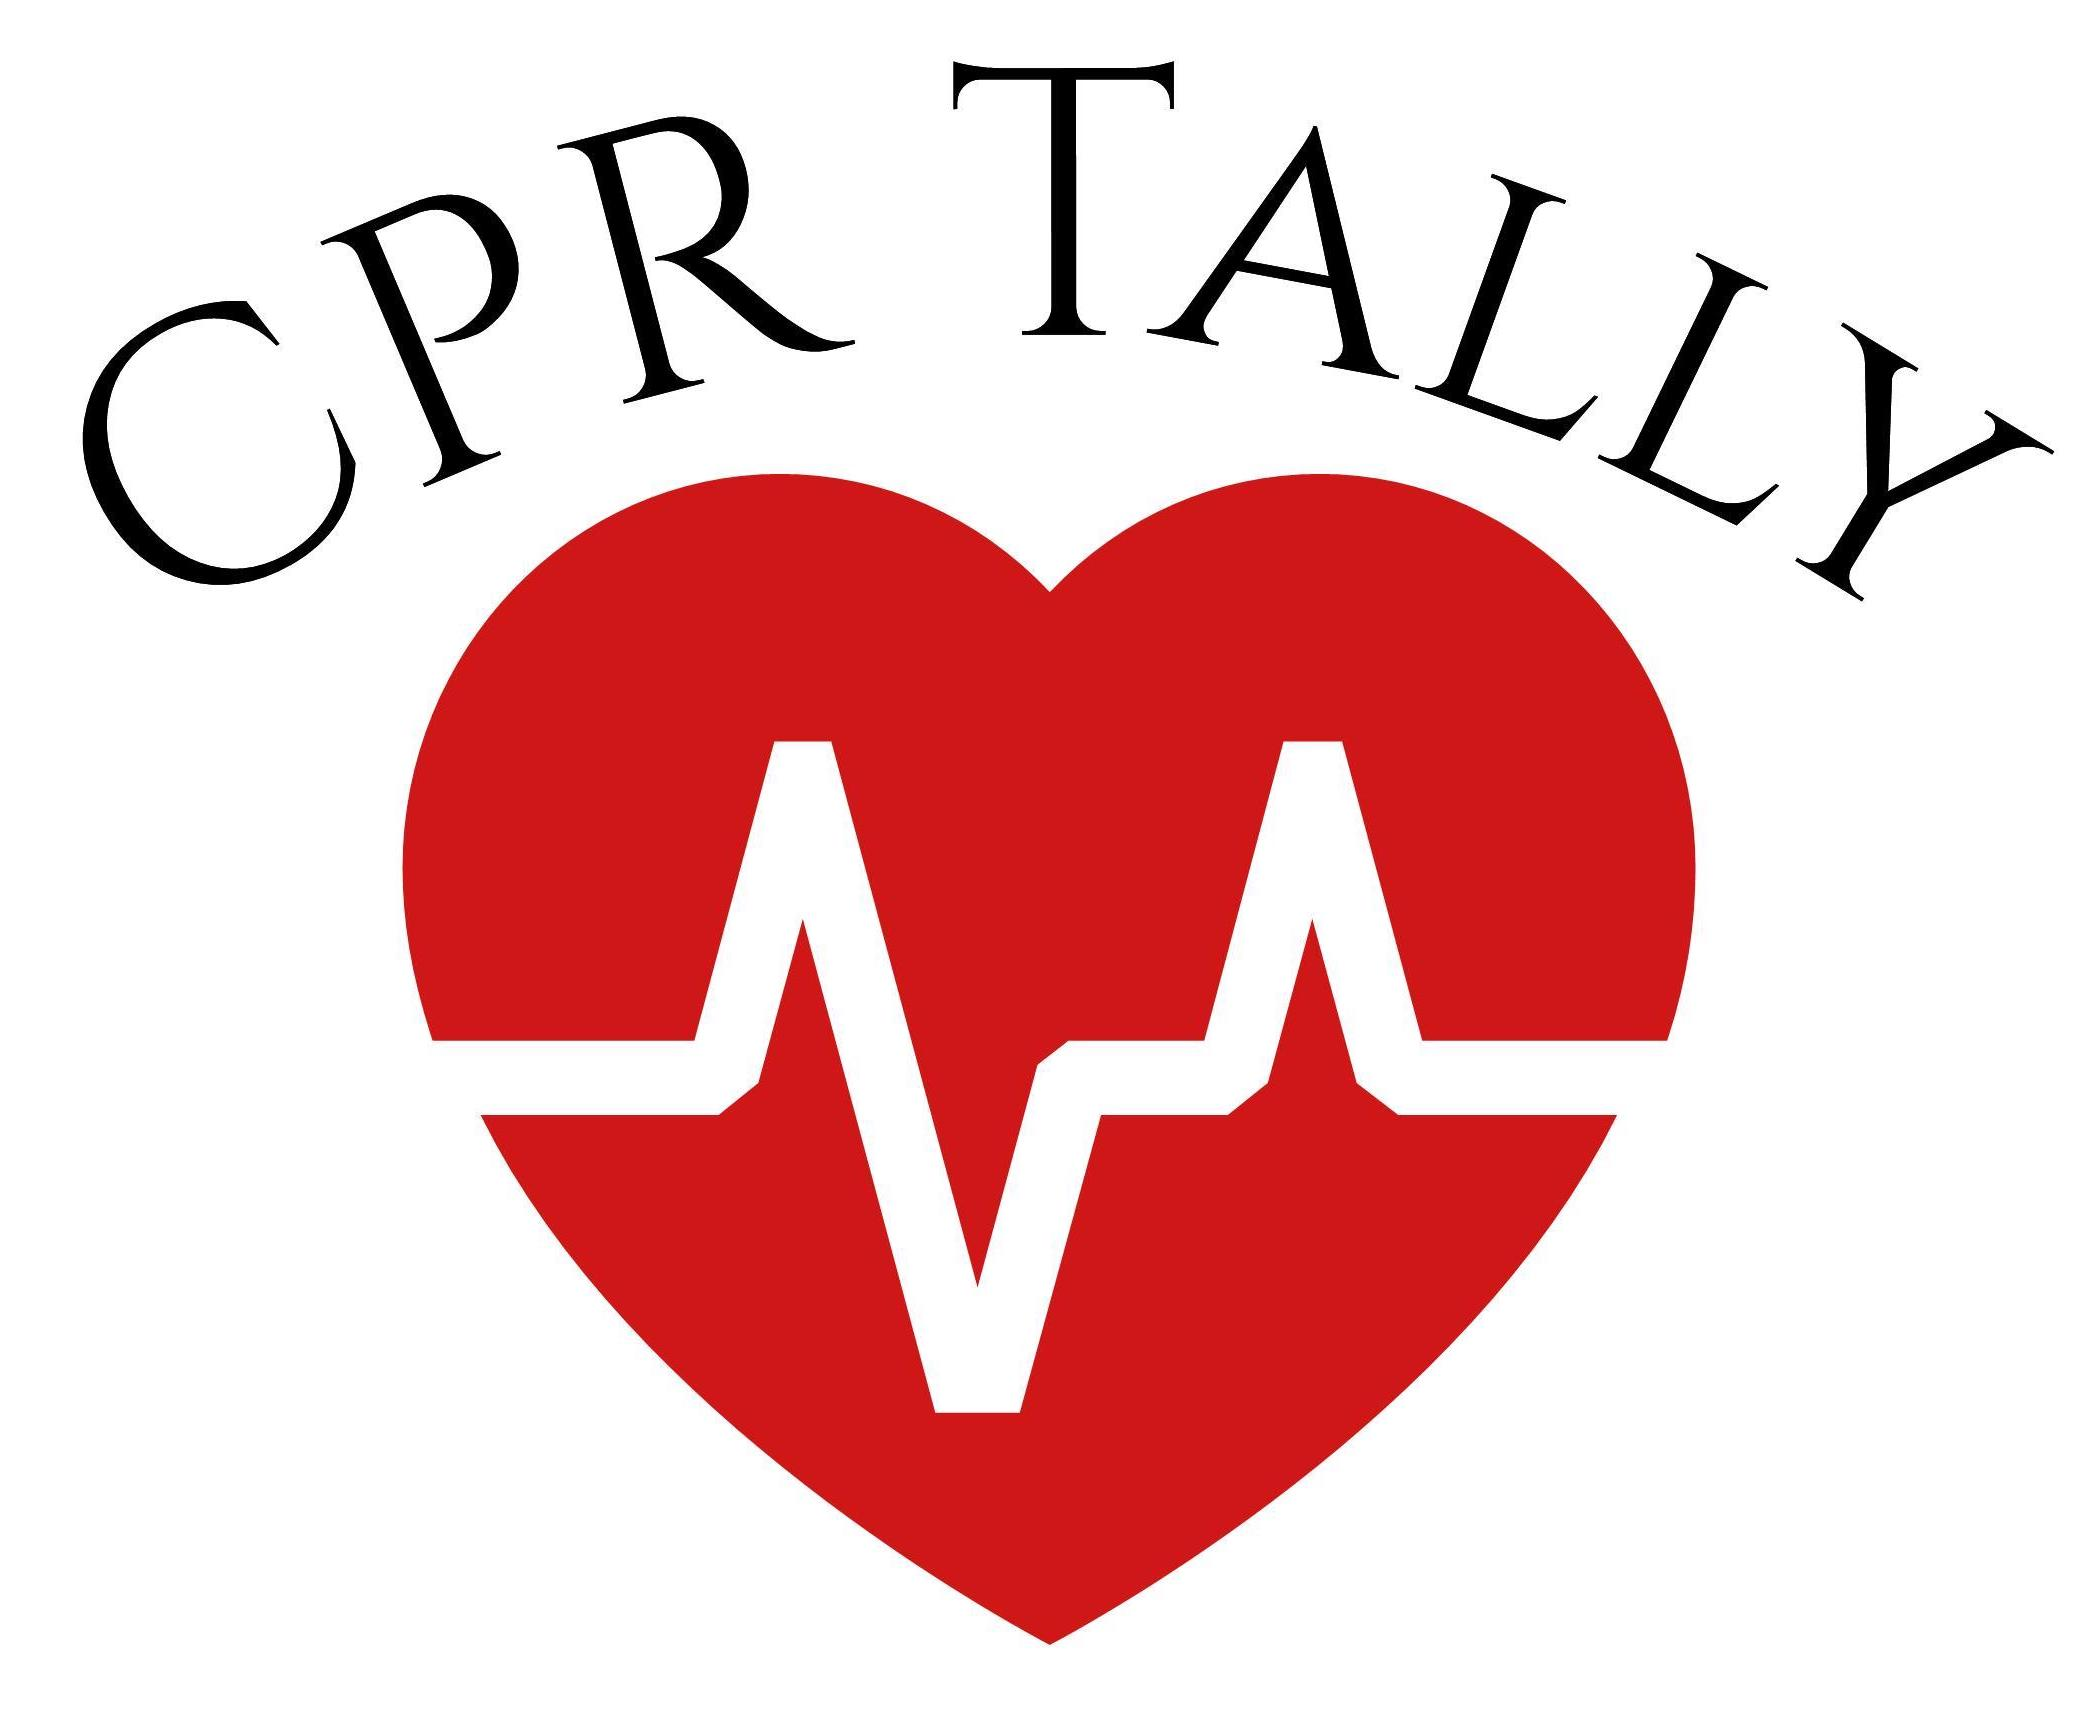 Cpr Bls First Aid Classes Cpr Tally Noco Cpr